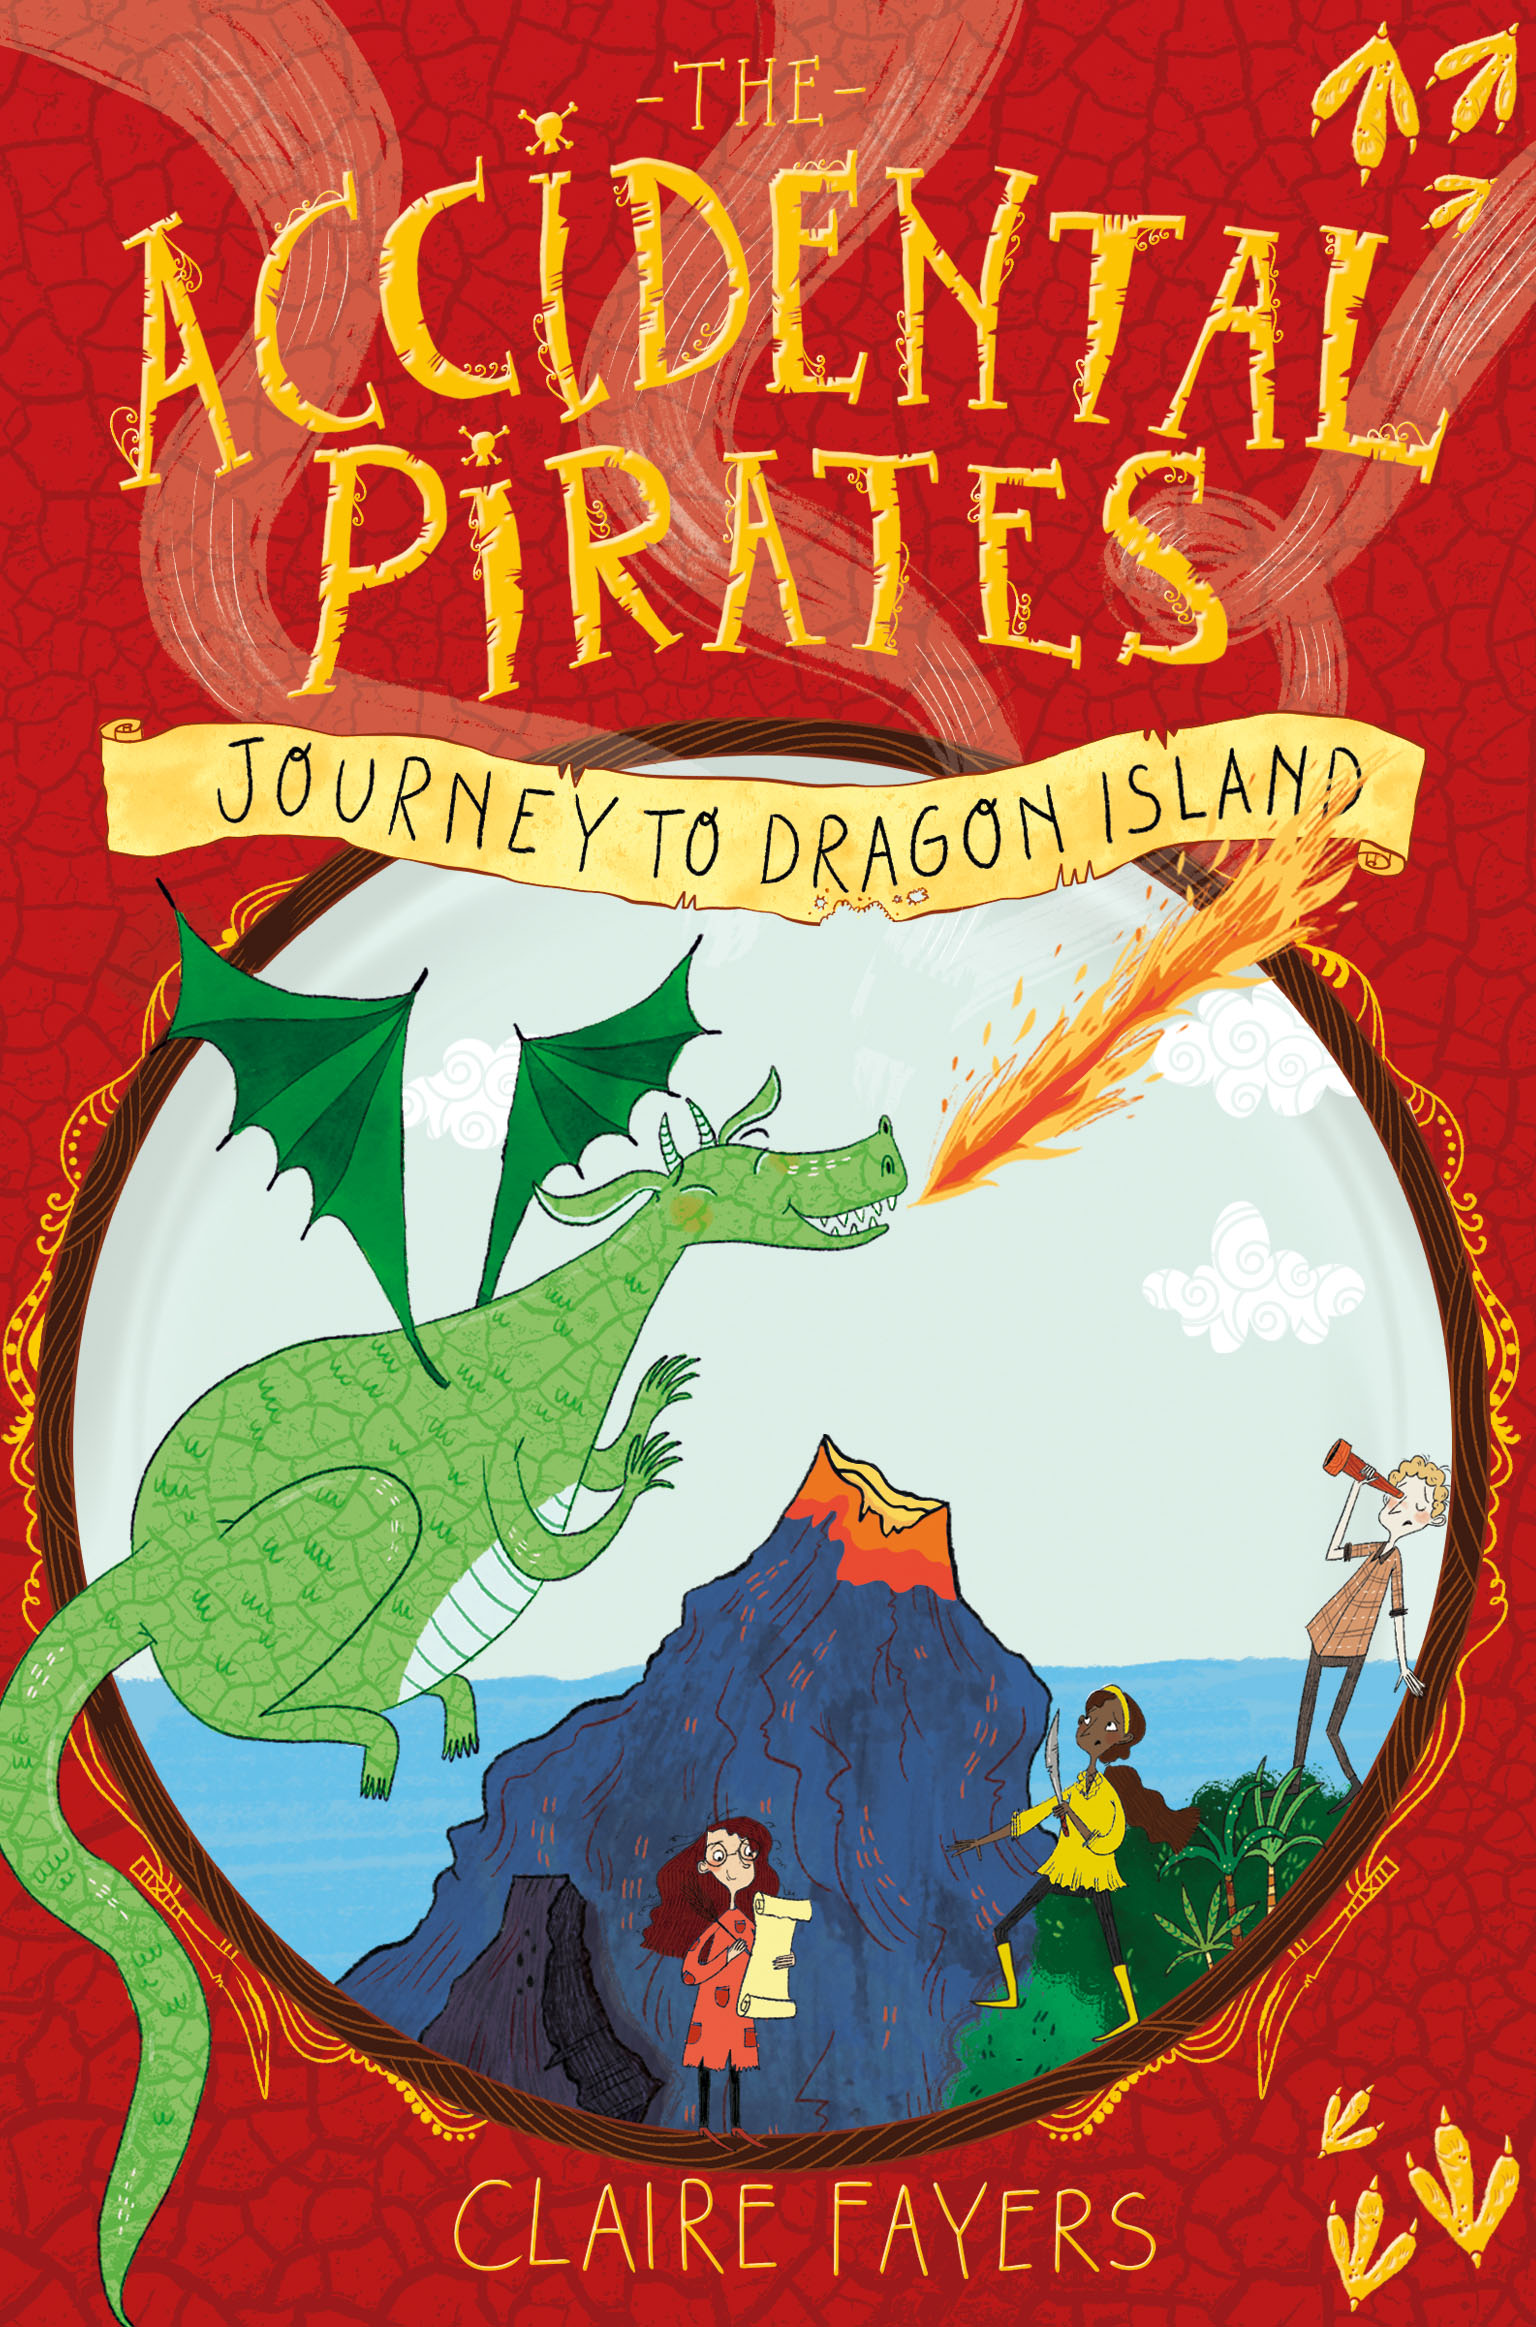 The Accidental Pirates, Journey to Dragon Island